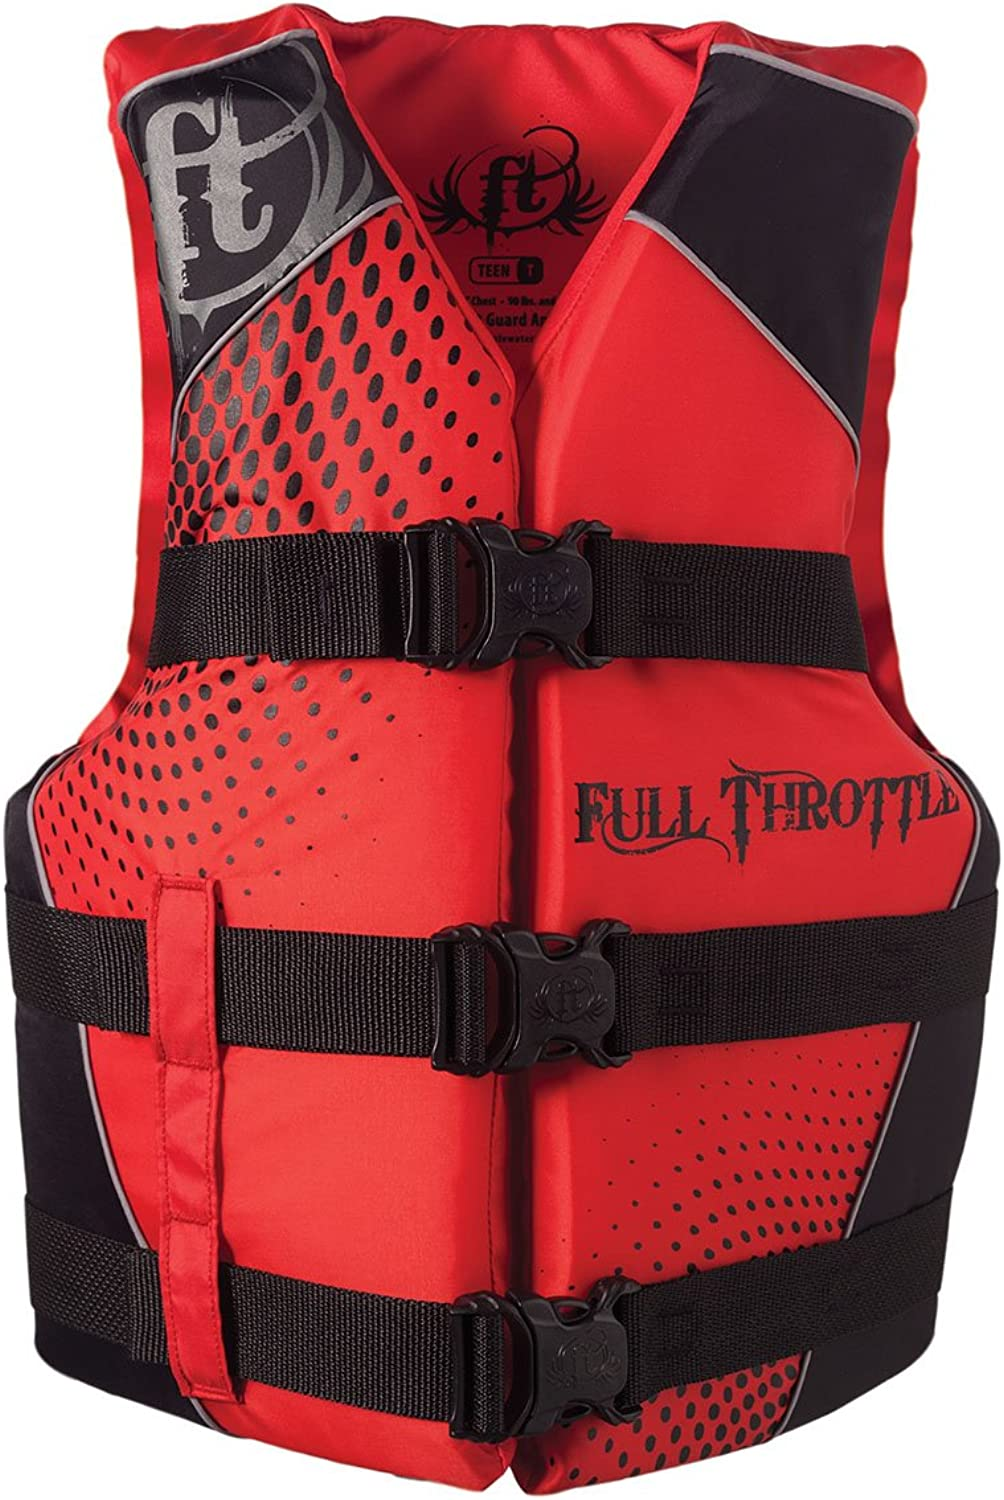 Full Thredtle Teen DualSized Nylon Water Sports Vest, Red